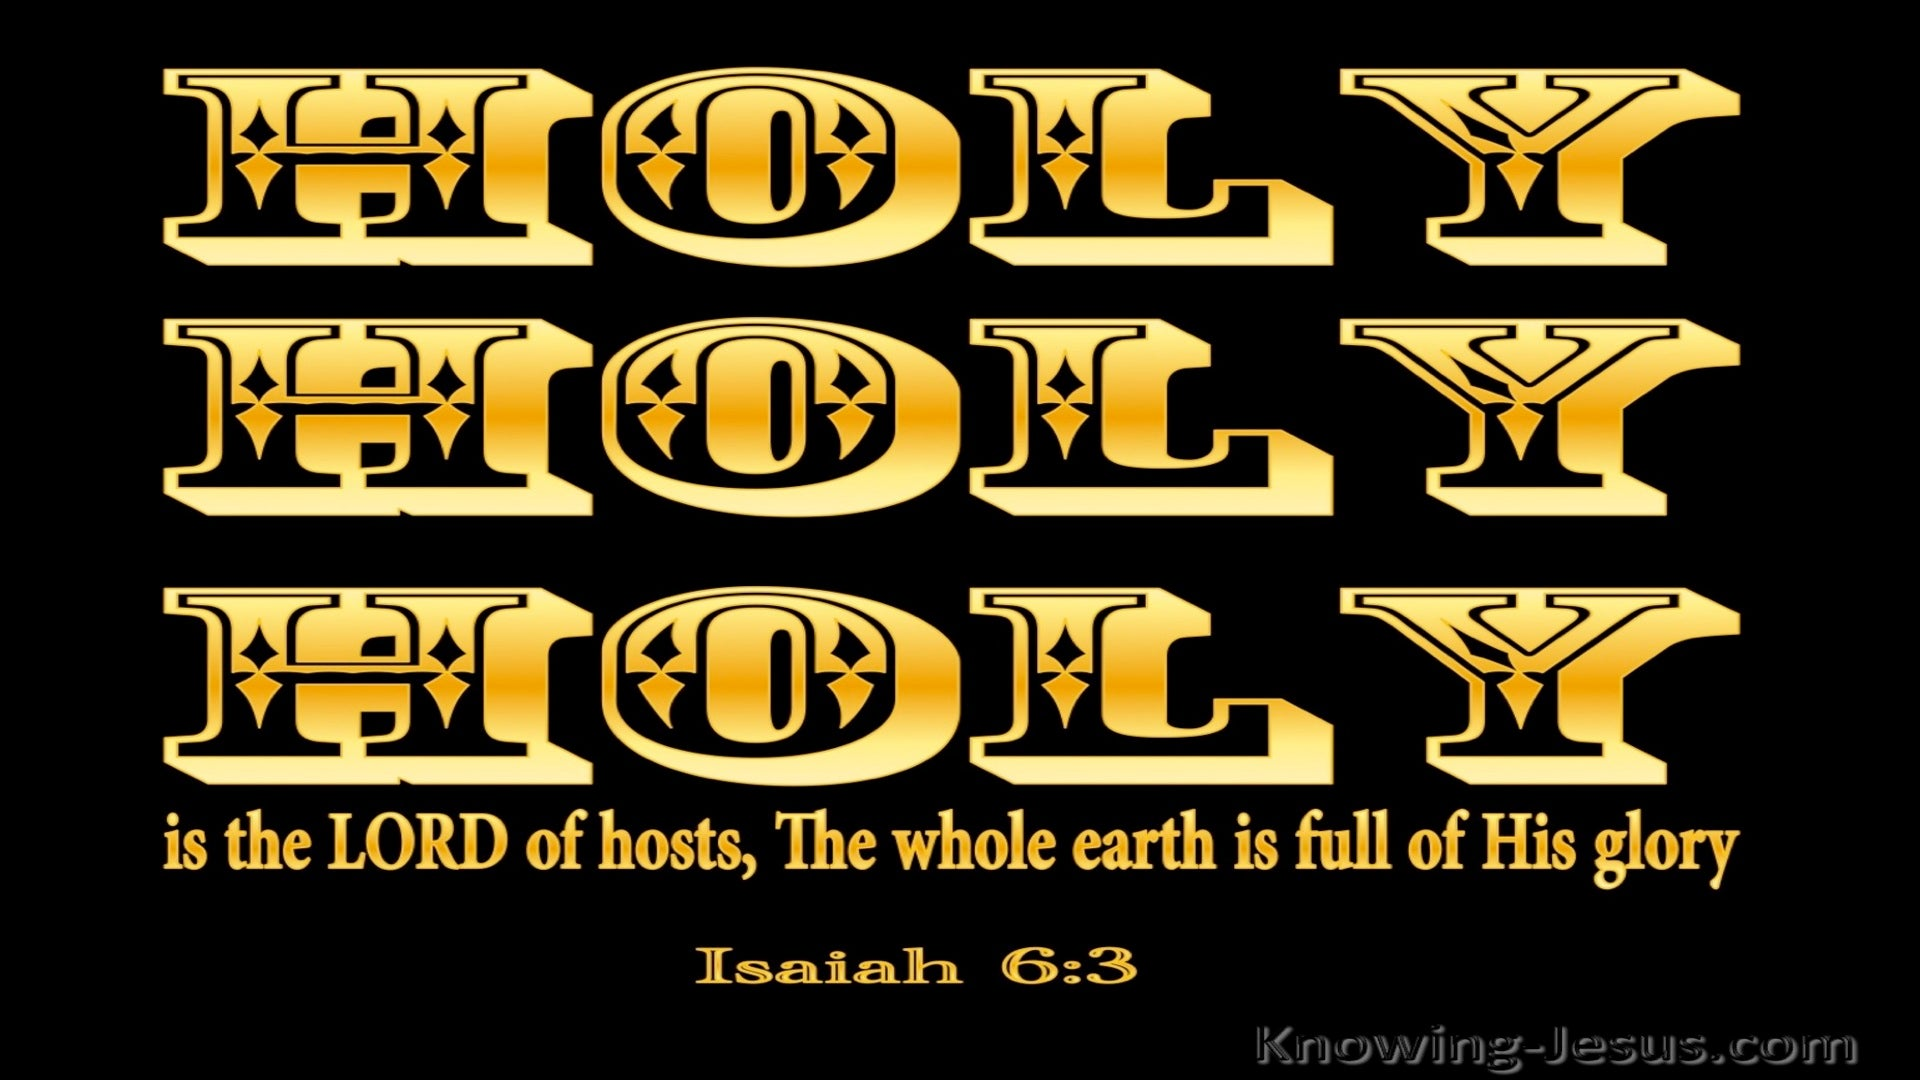 Isaiah 6:3 Holy Holy Holy is the Lord (gold)